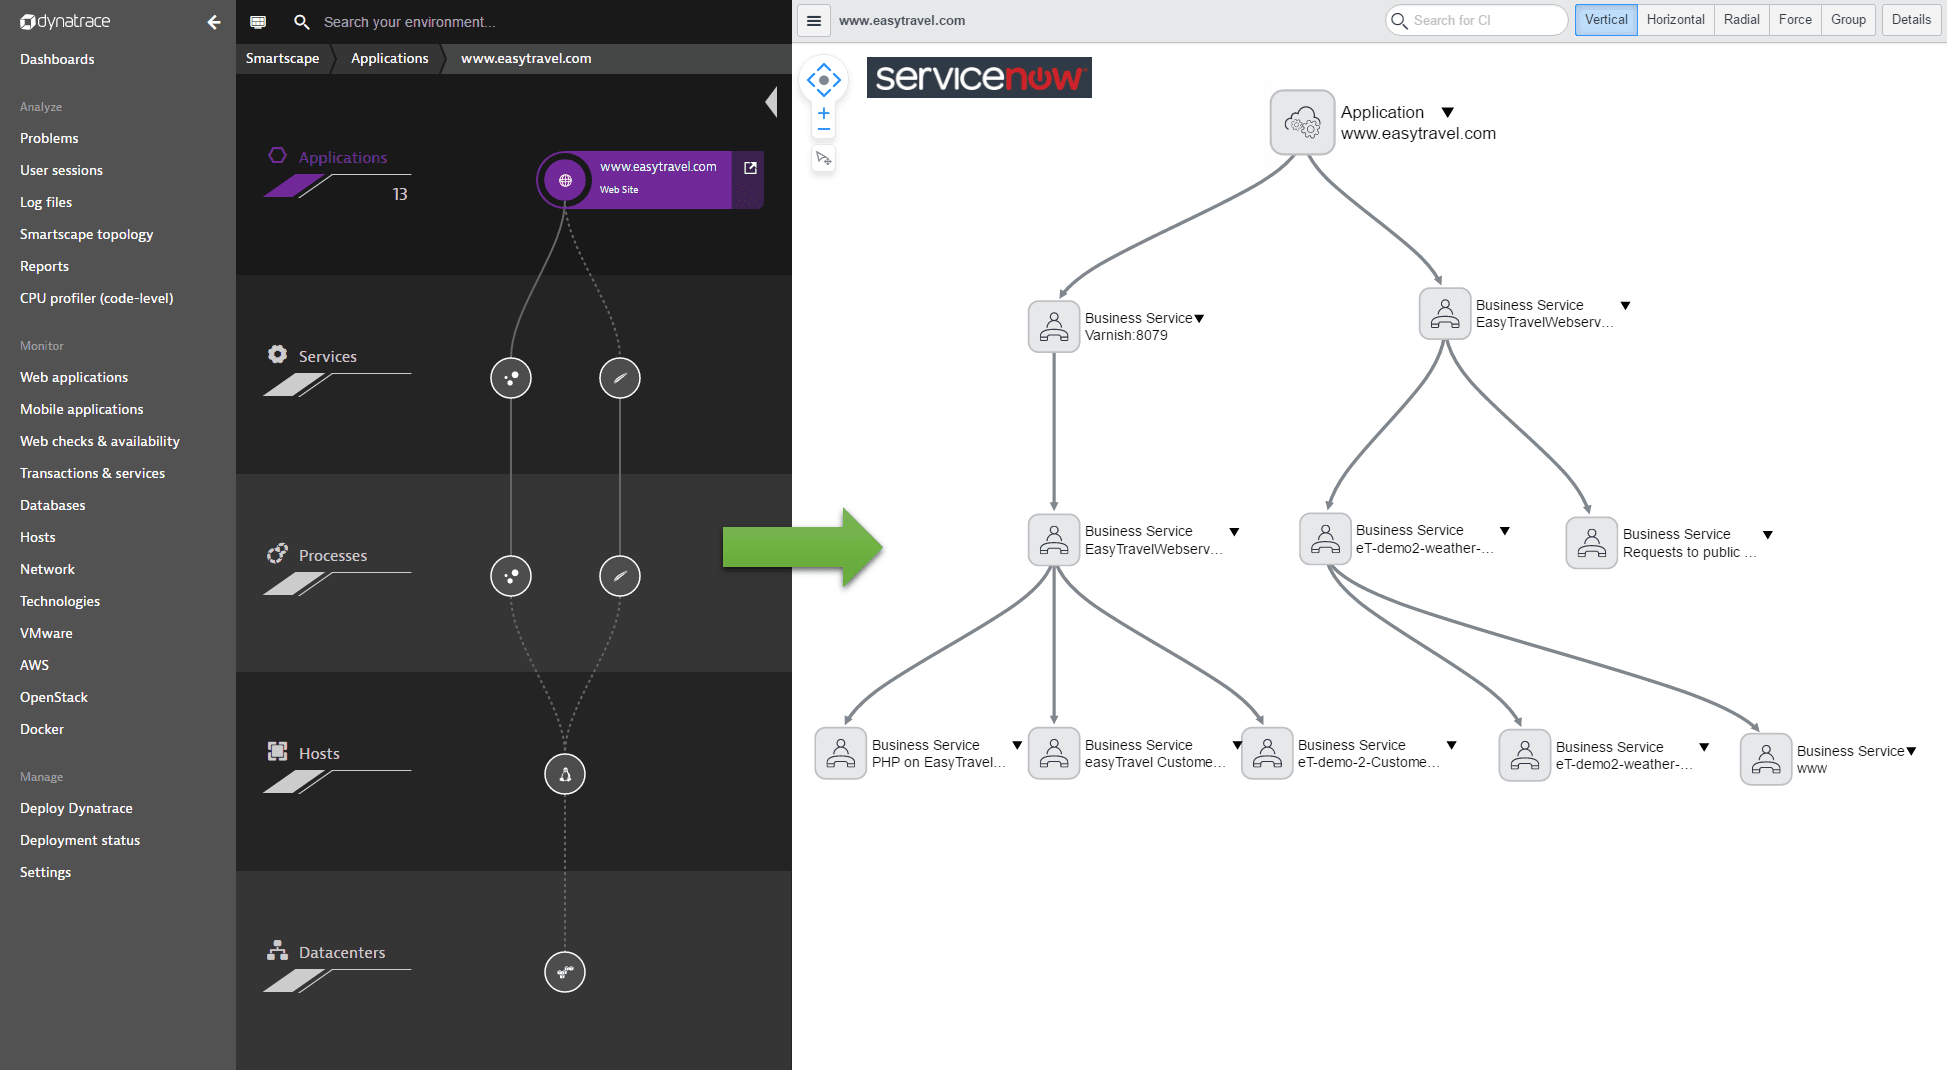 Synchronization of a Dynatrace-discovered application and its relationships to auto-discovered business-critical services looks in Dynatrace Smartscape and how it looks when synchronized within the ServiceNow dependency map